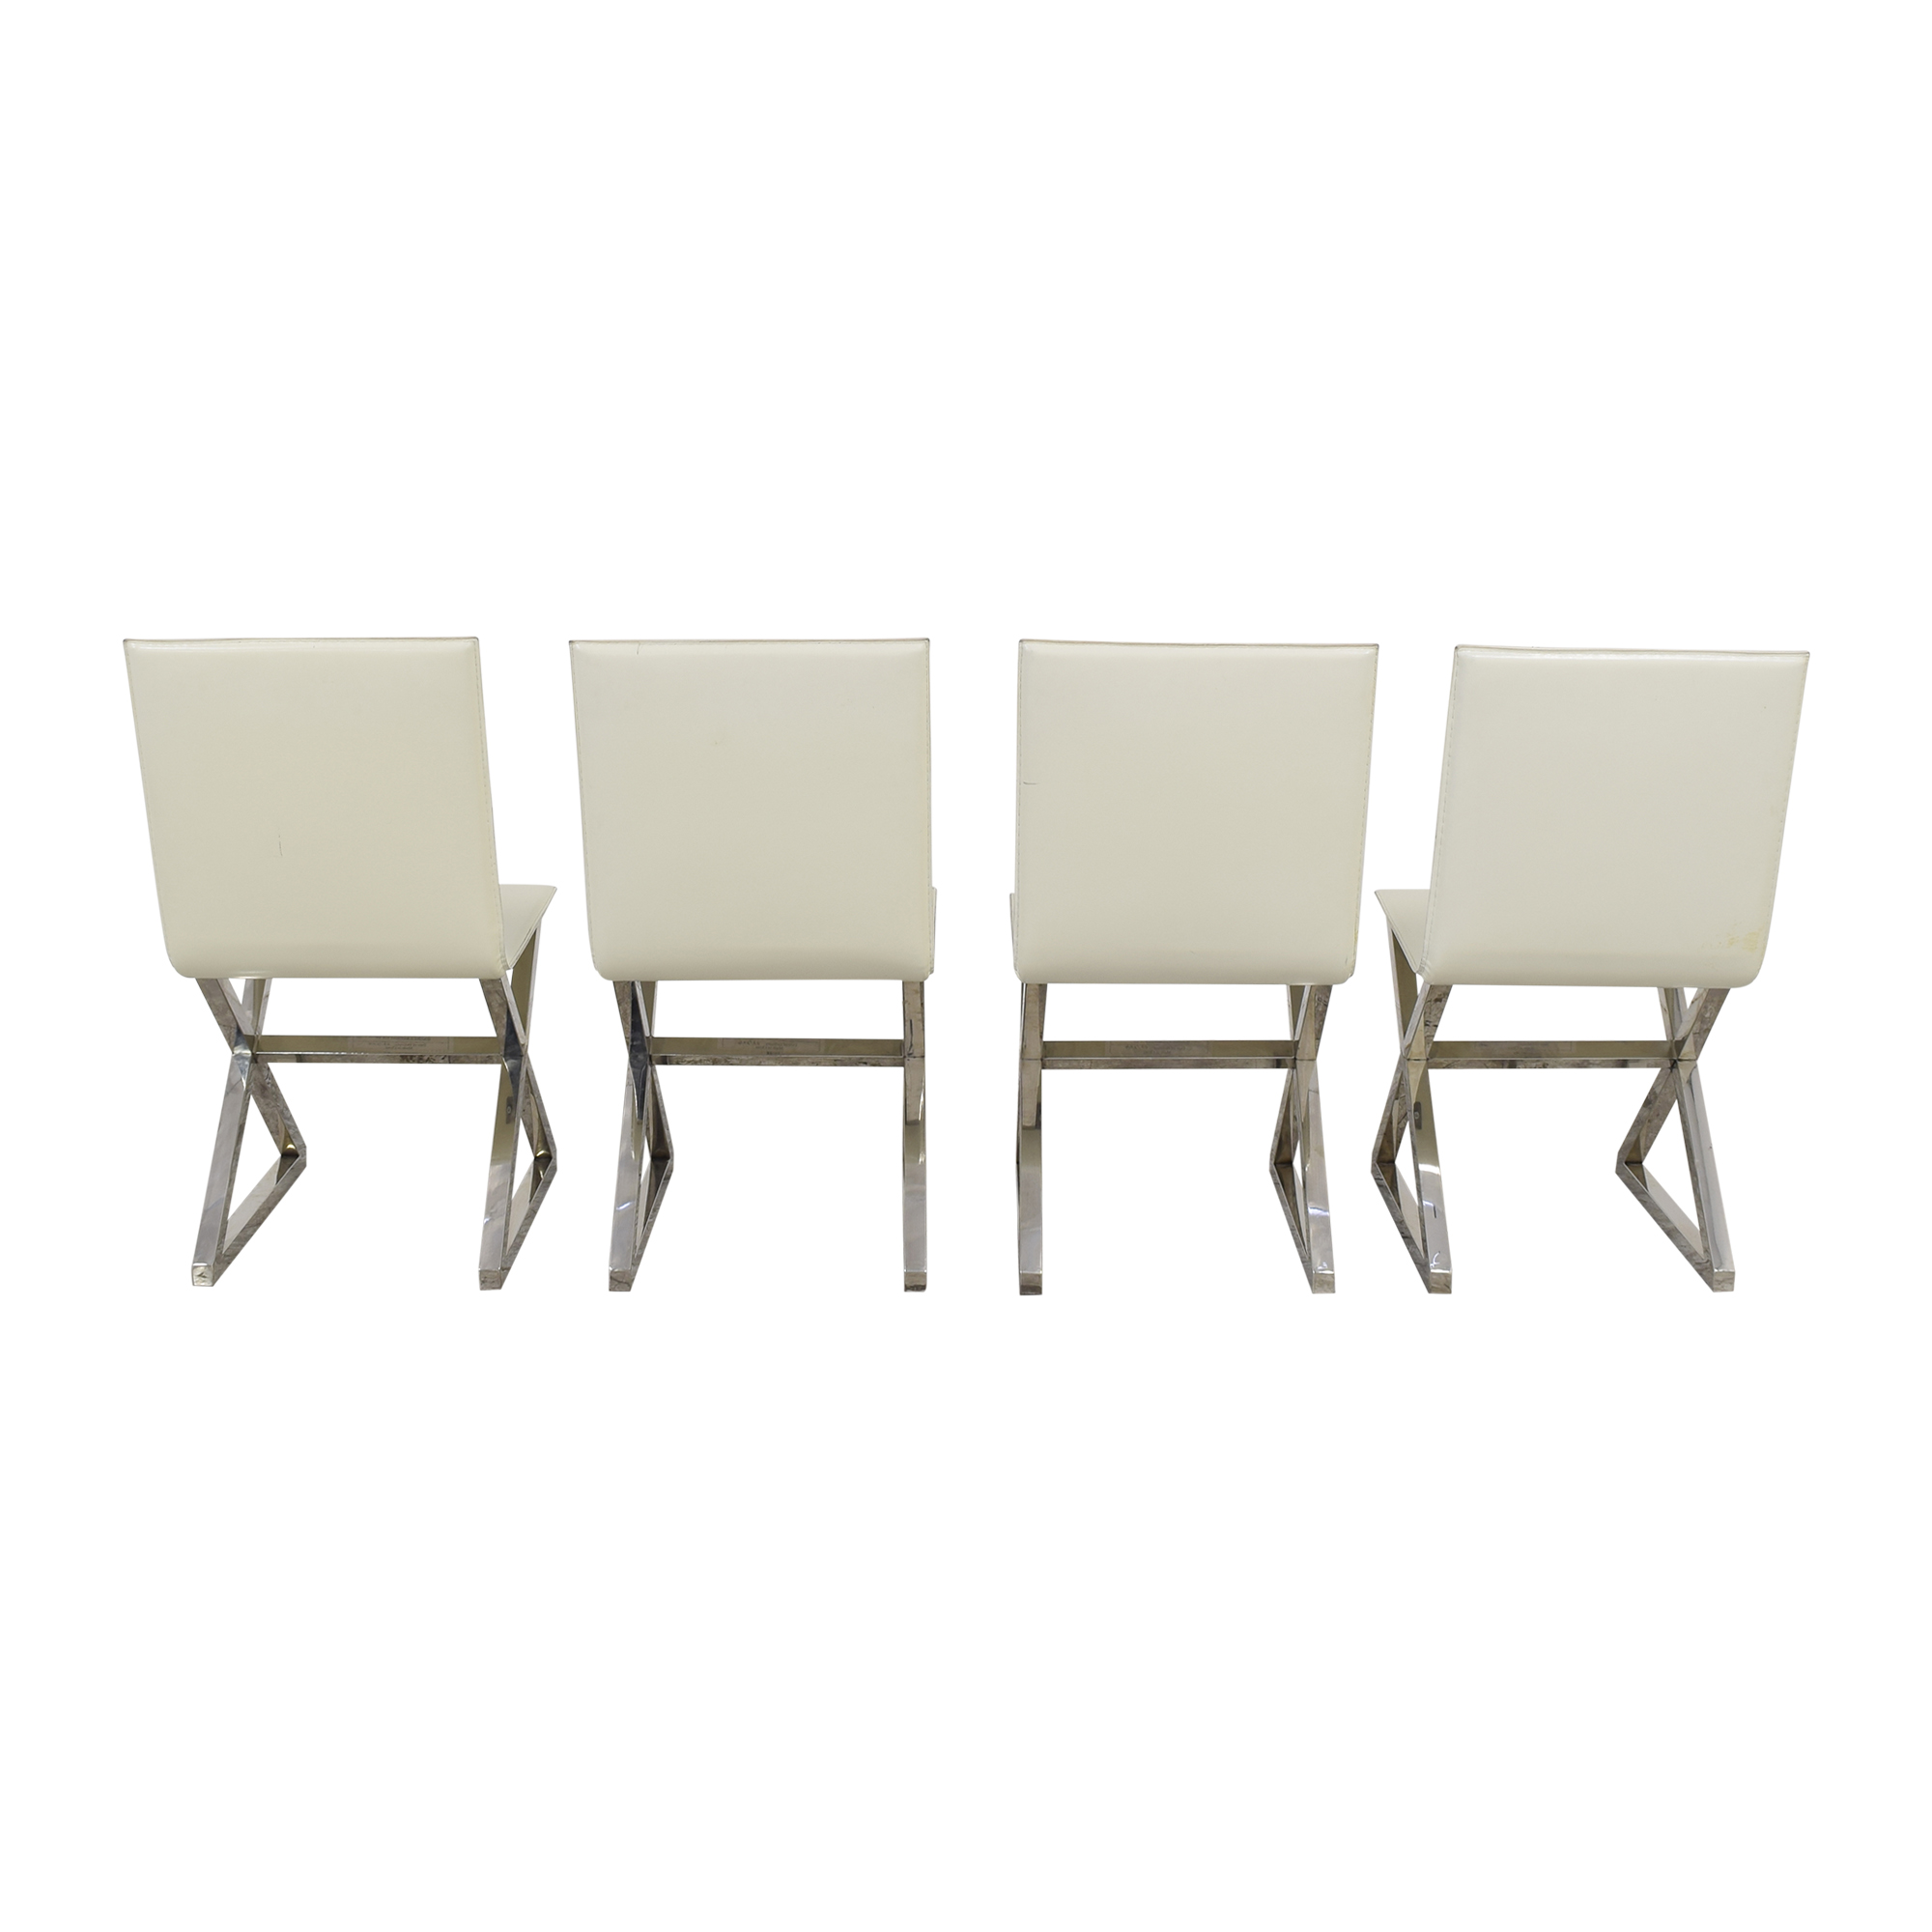 Z Gallerie Z Gallerie Axis Dining Chairs on sale